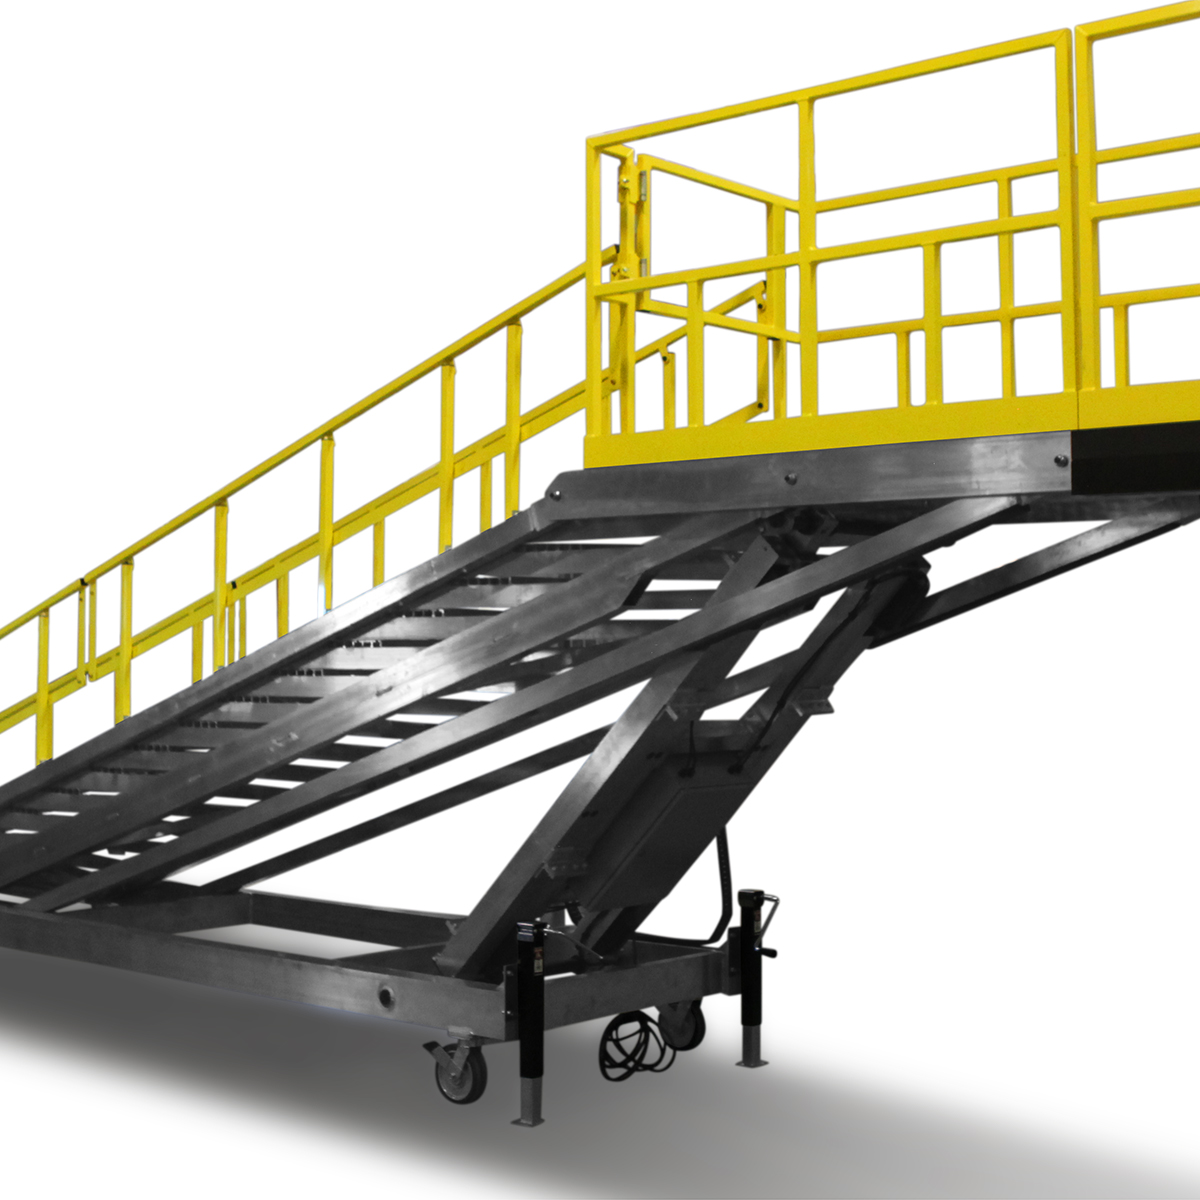 OSHA compliant, mobile aluminum staircase work platform with optional stabilizing floor jacks.